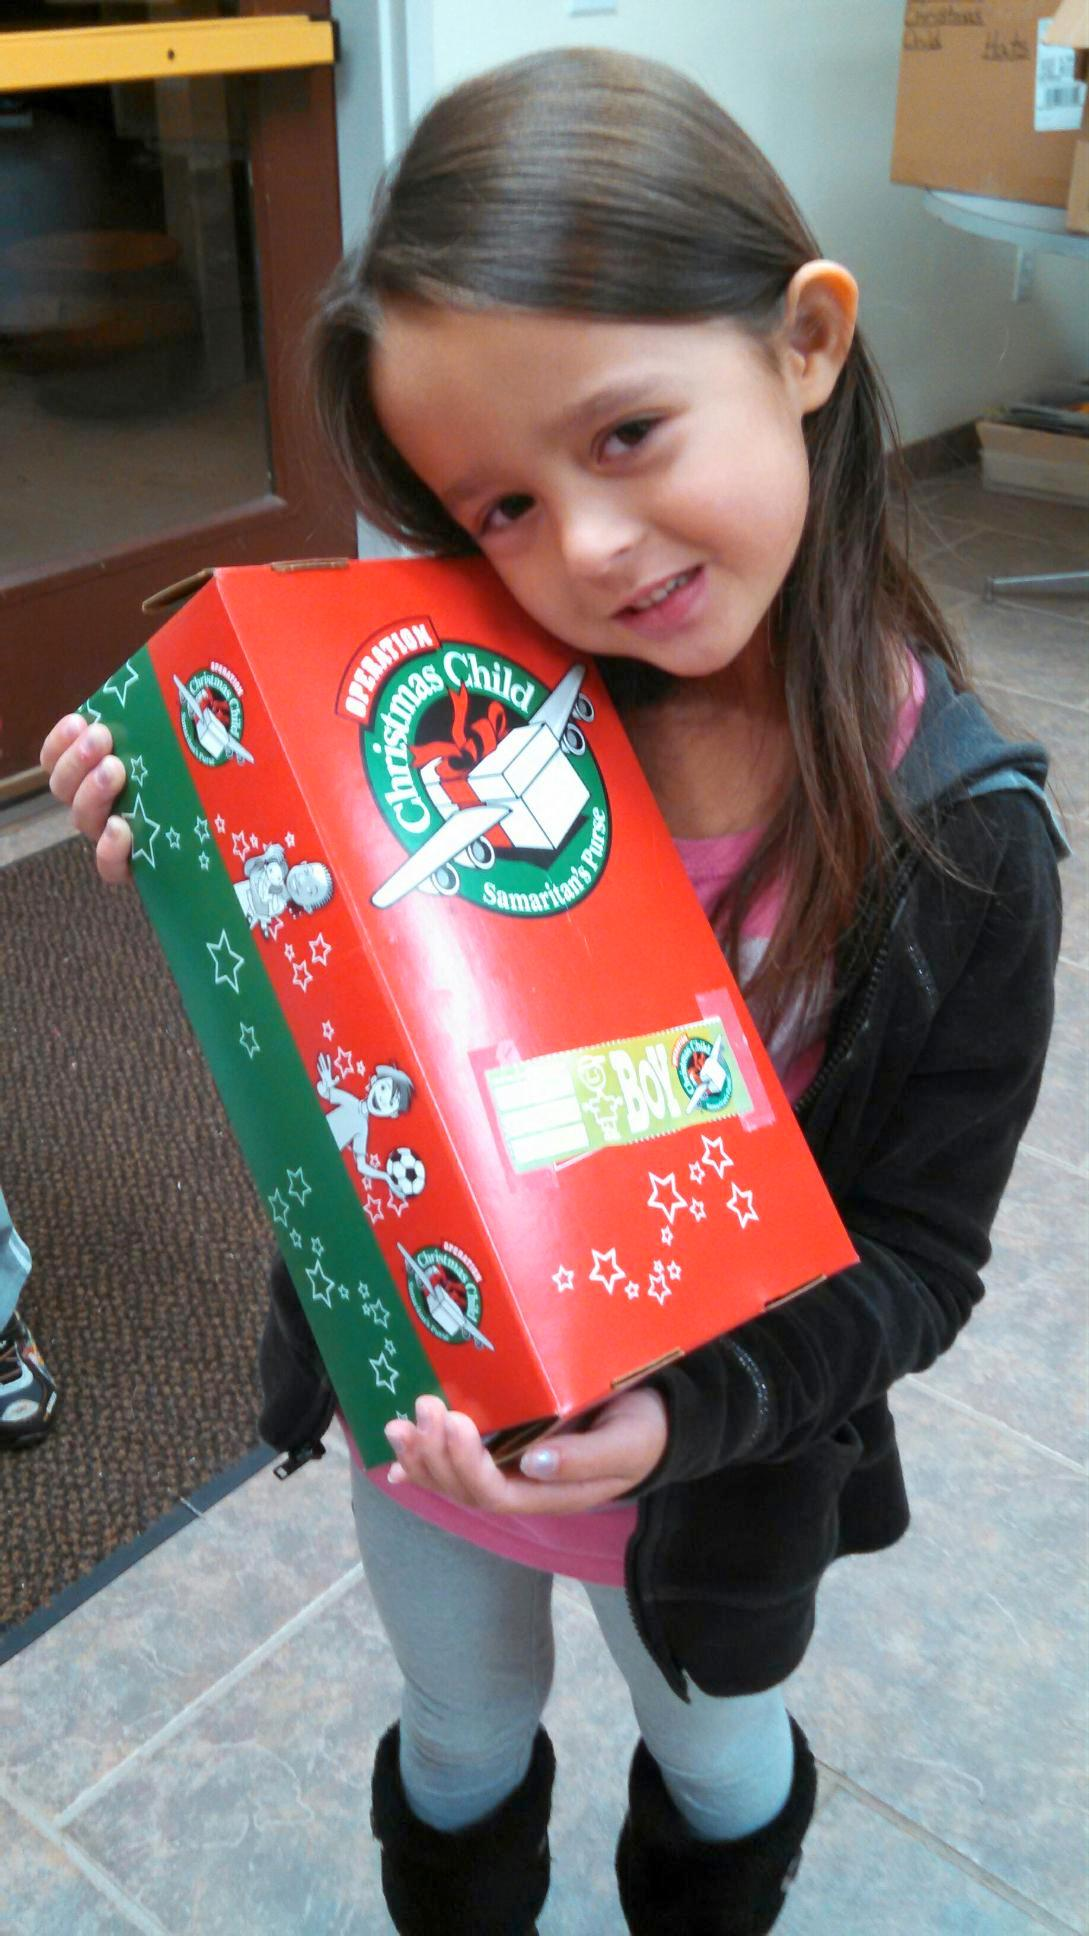 Aubrey donating to Operation Christmas Child